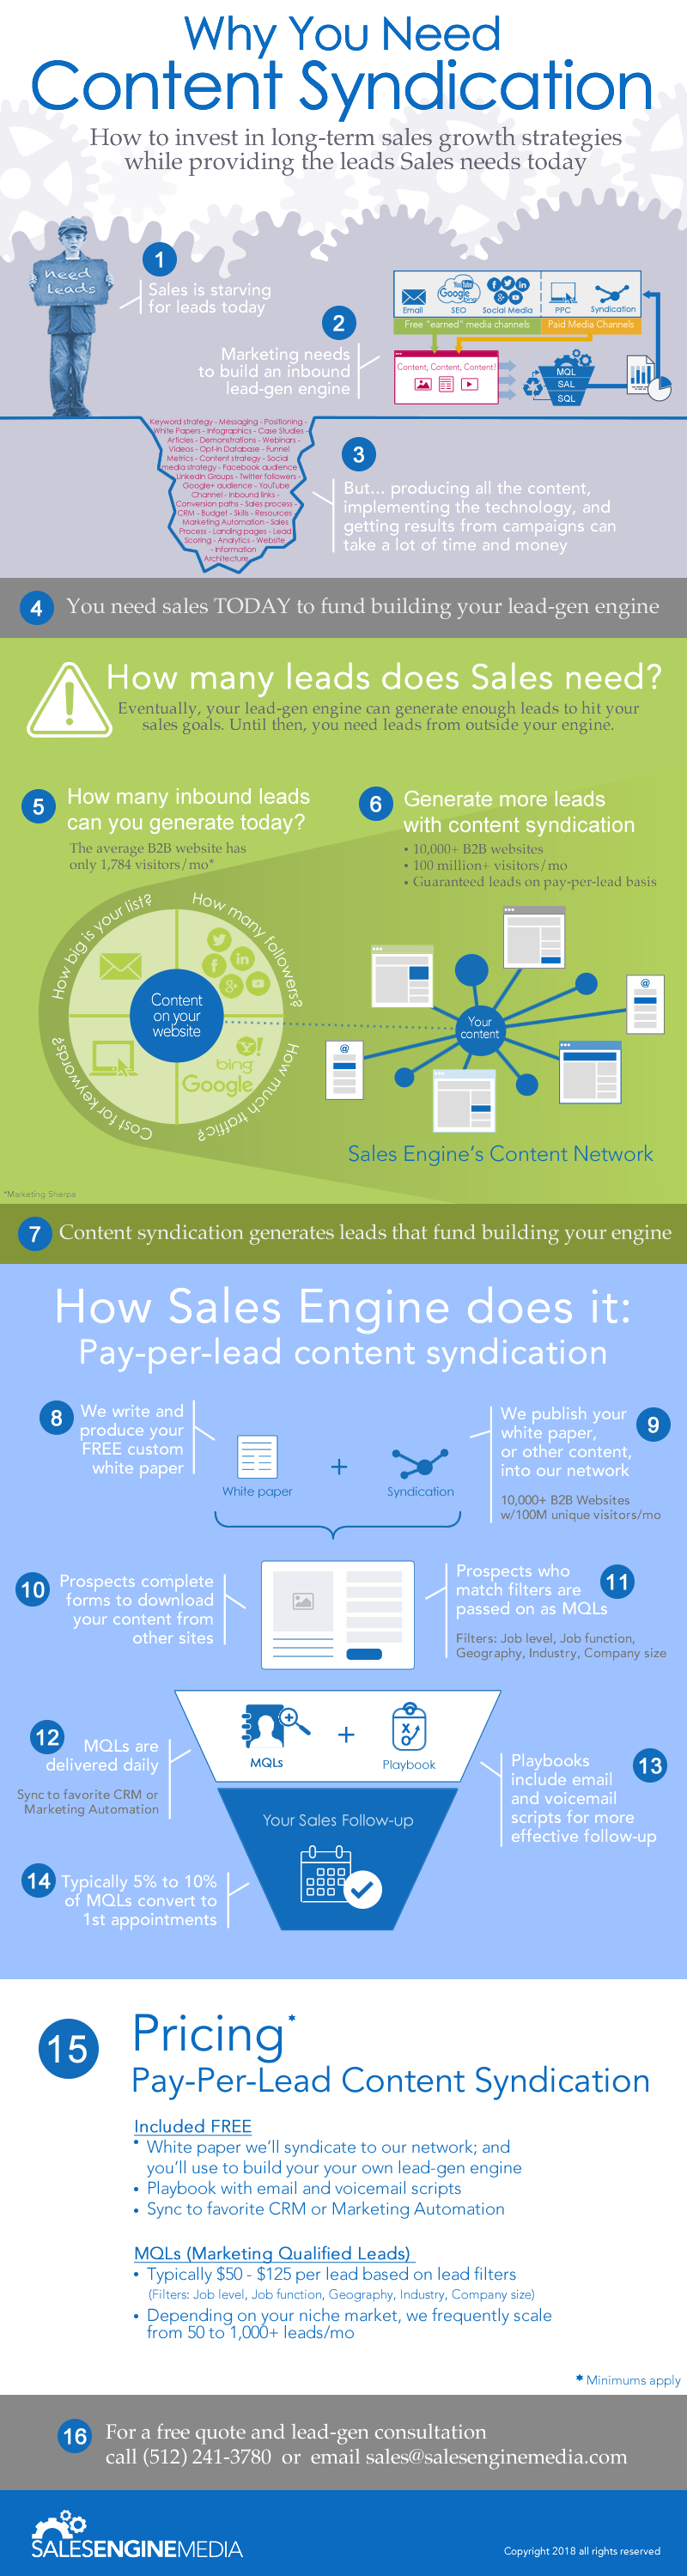 Why Content Syndication v3.png